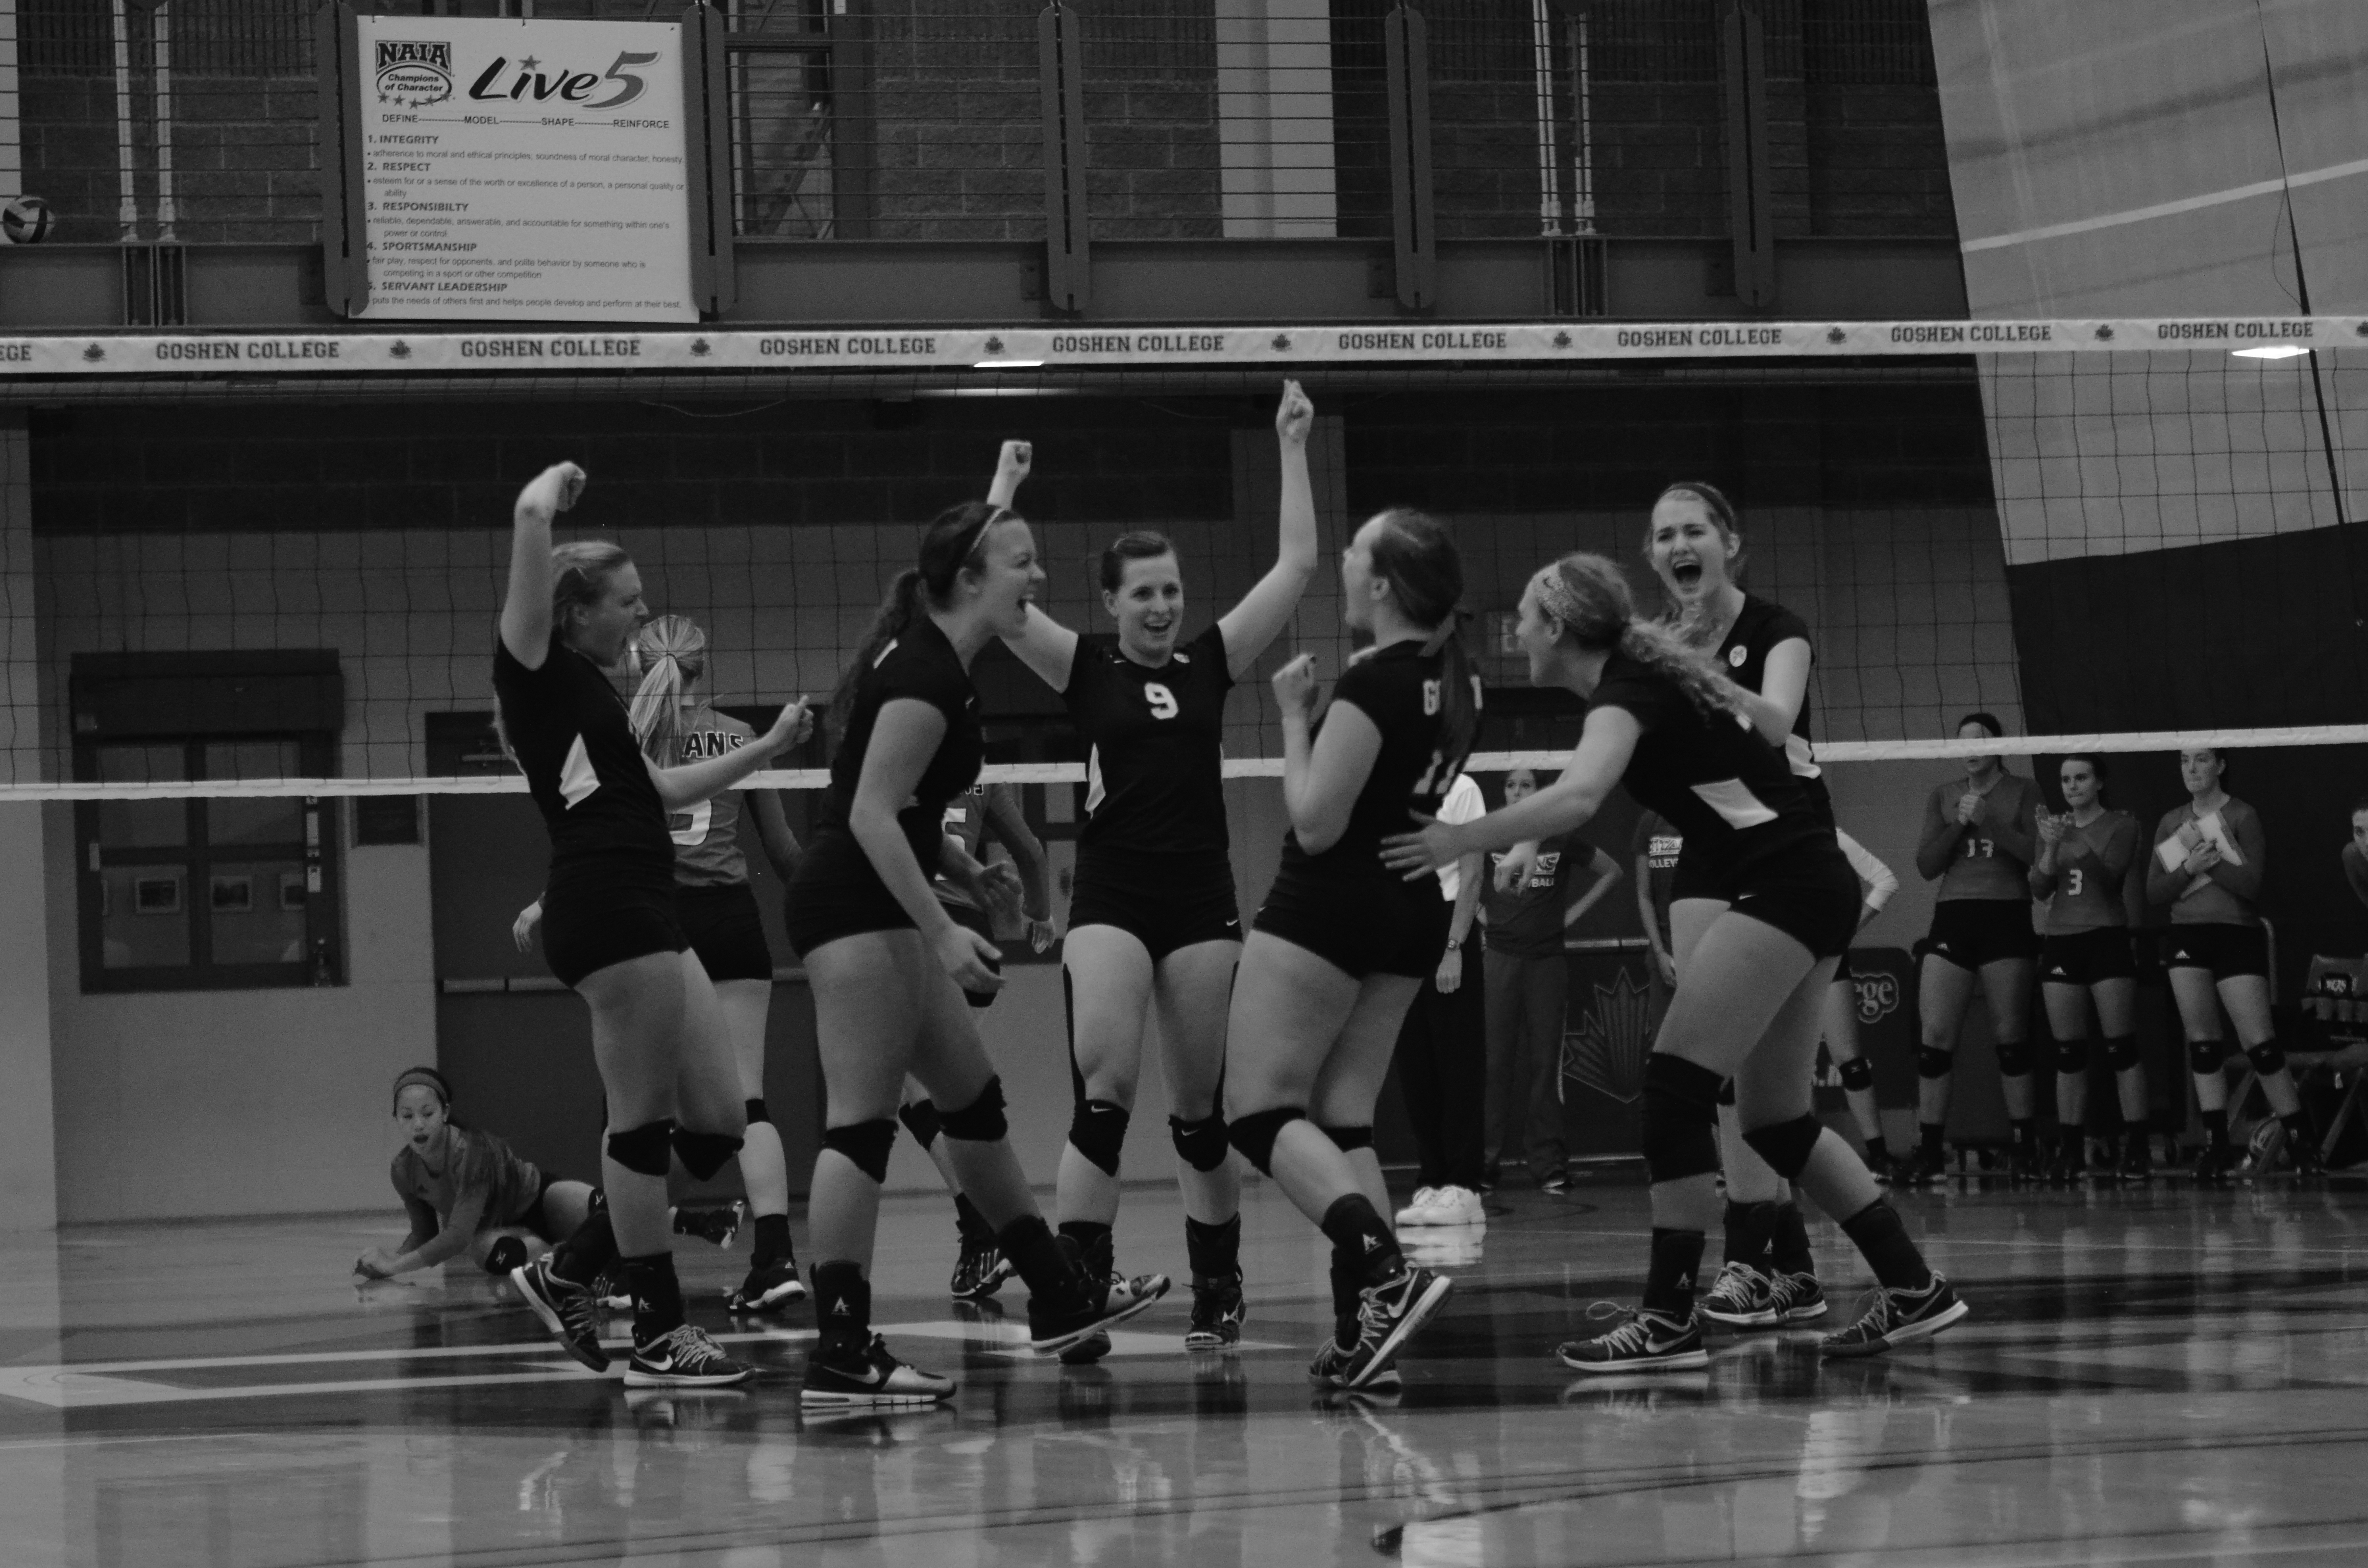 Black and white image of Goshen volleyball players celebrating a point during a game